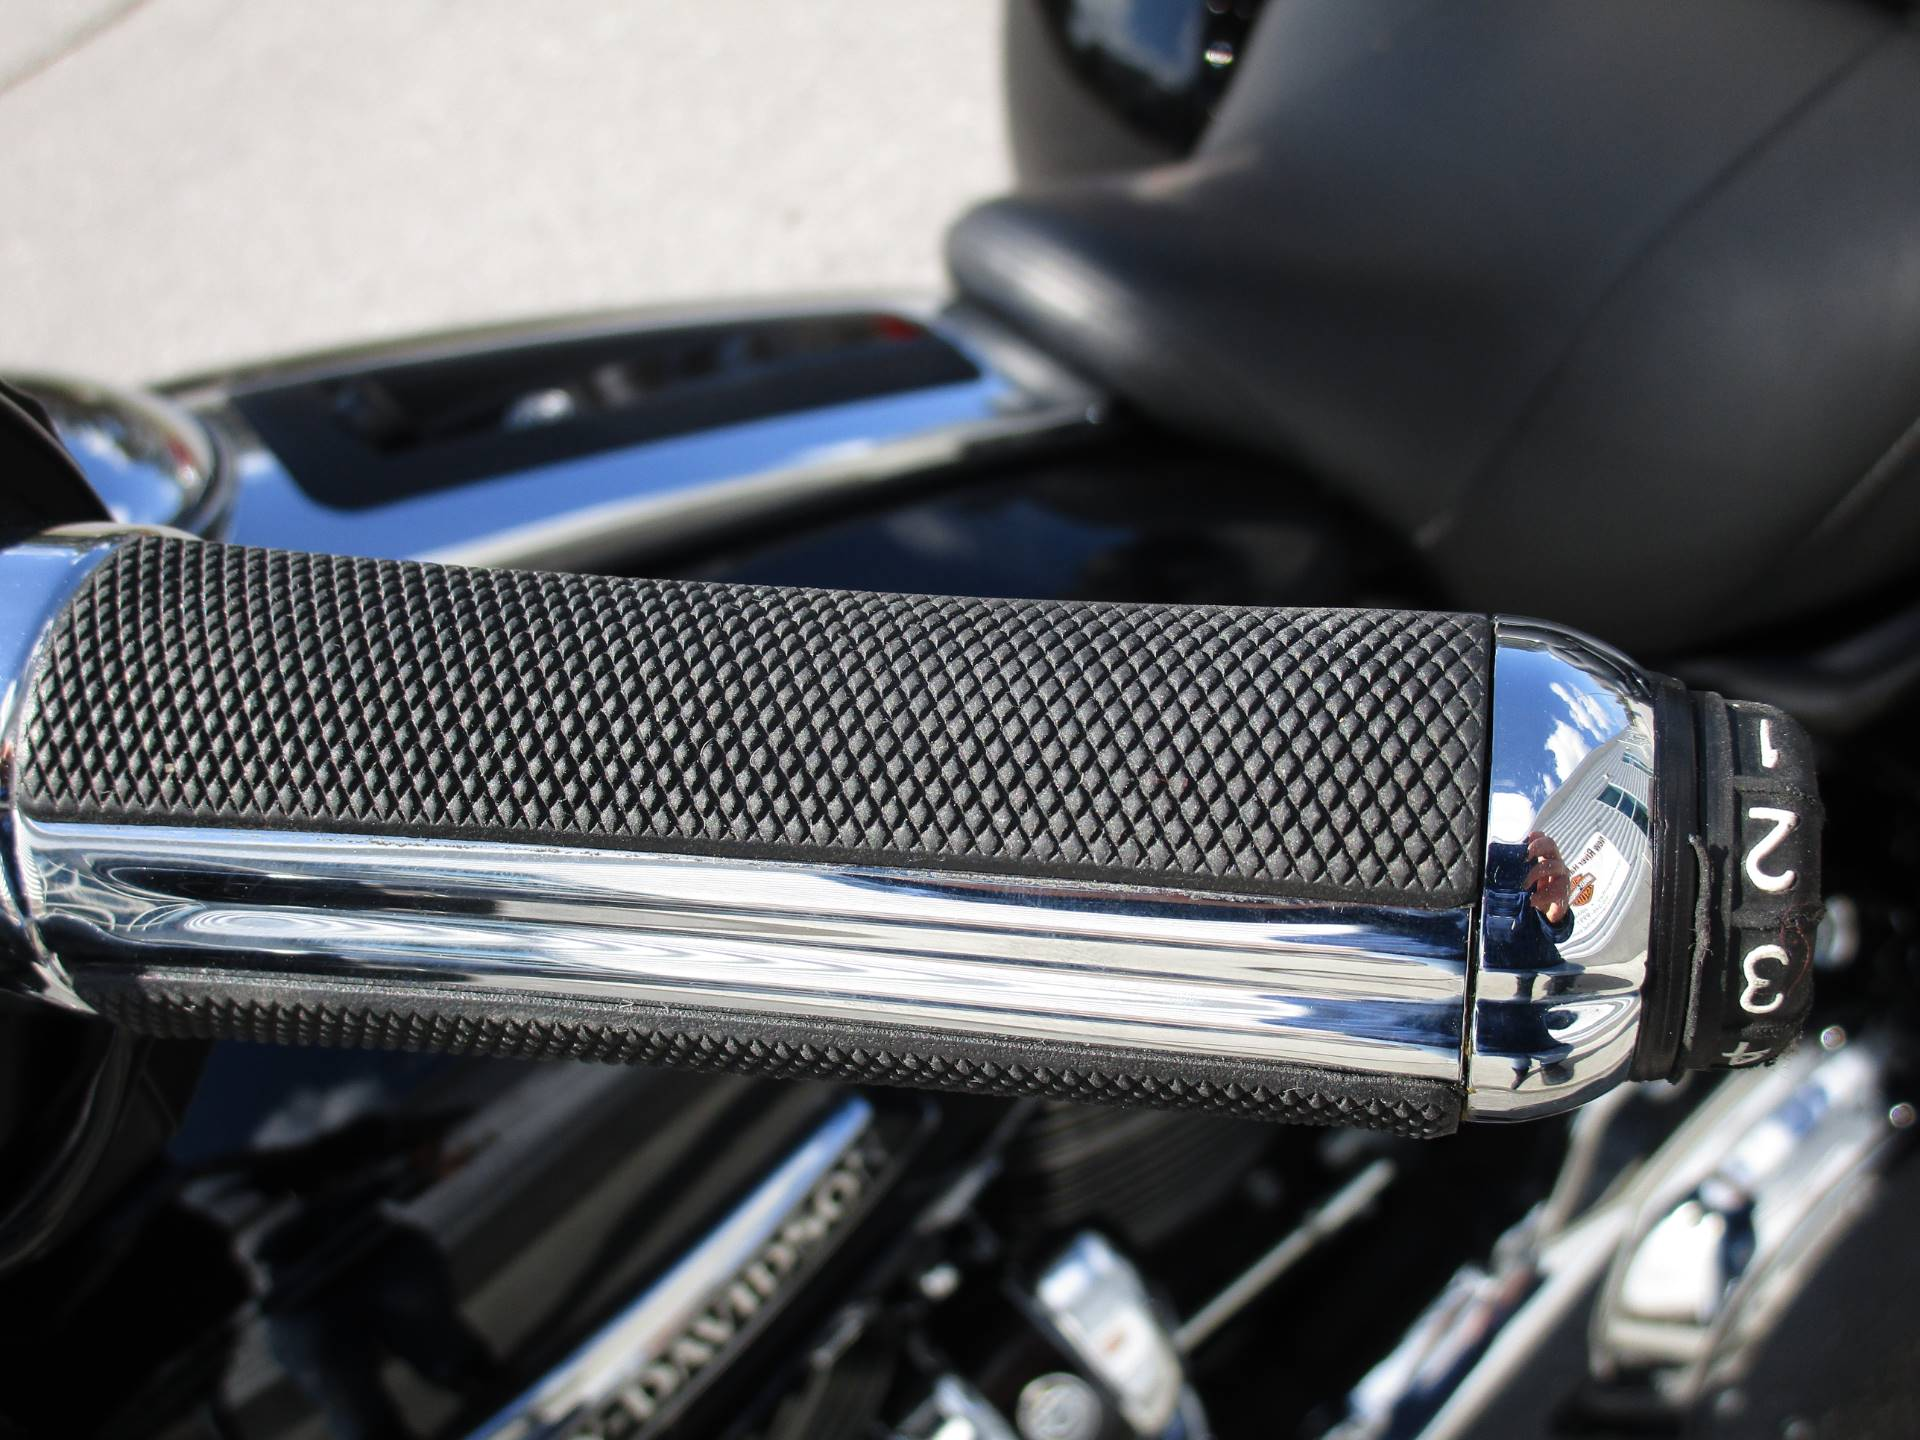 2019 Harley-Davidson Tri Glide® Ultra in Jacksonville, North Carolina - Photo 4